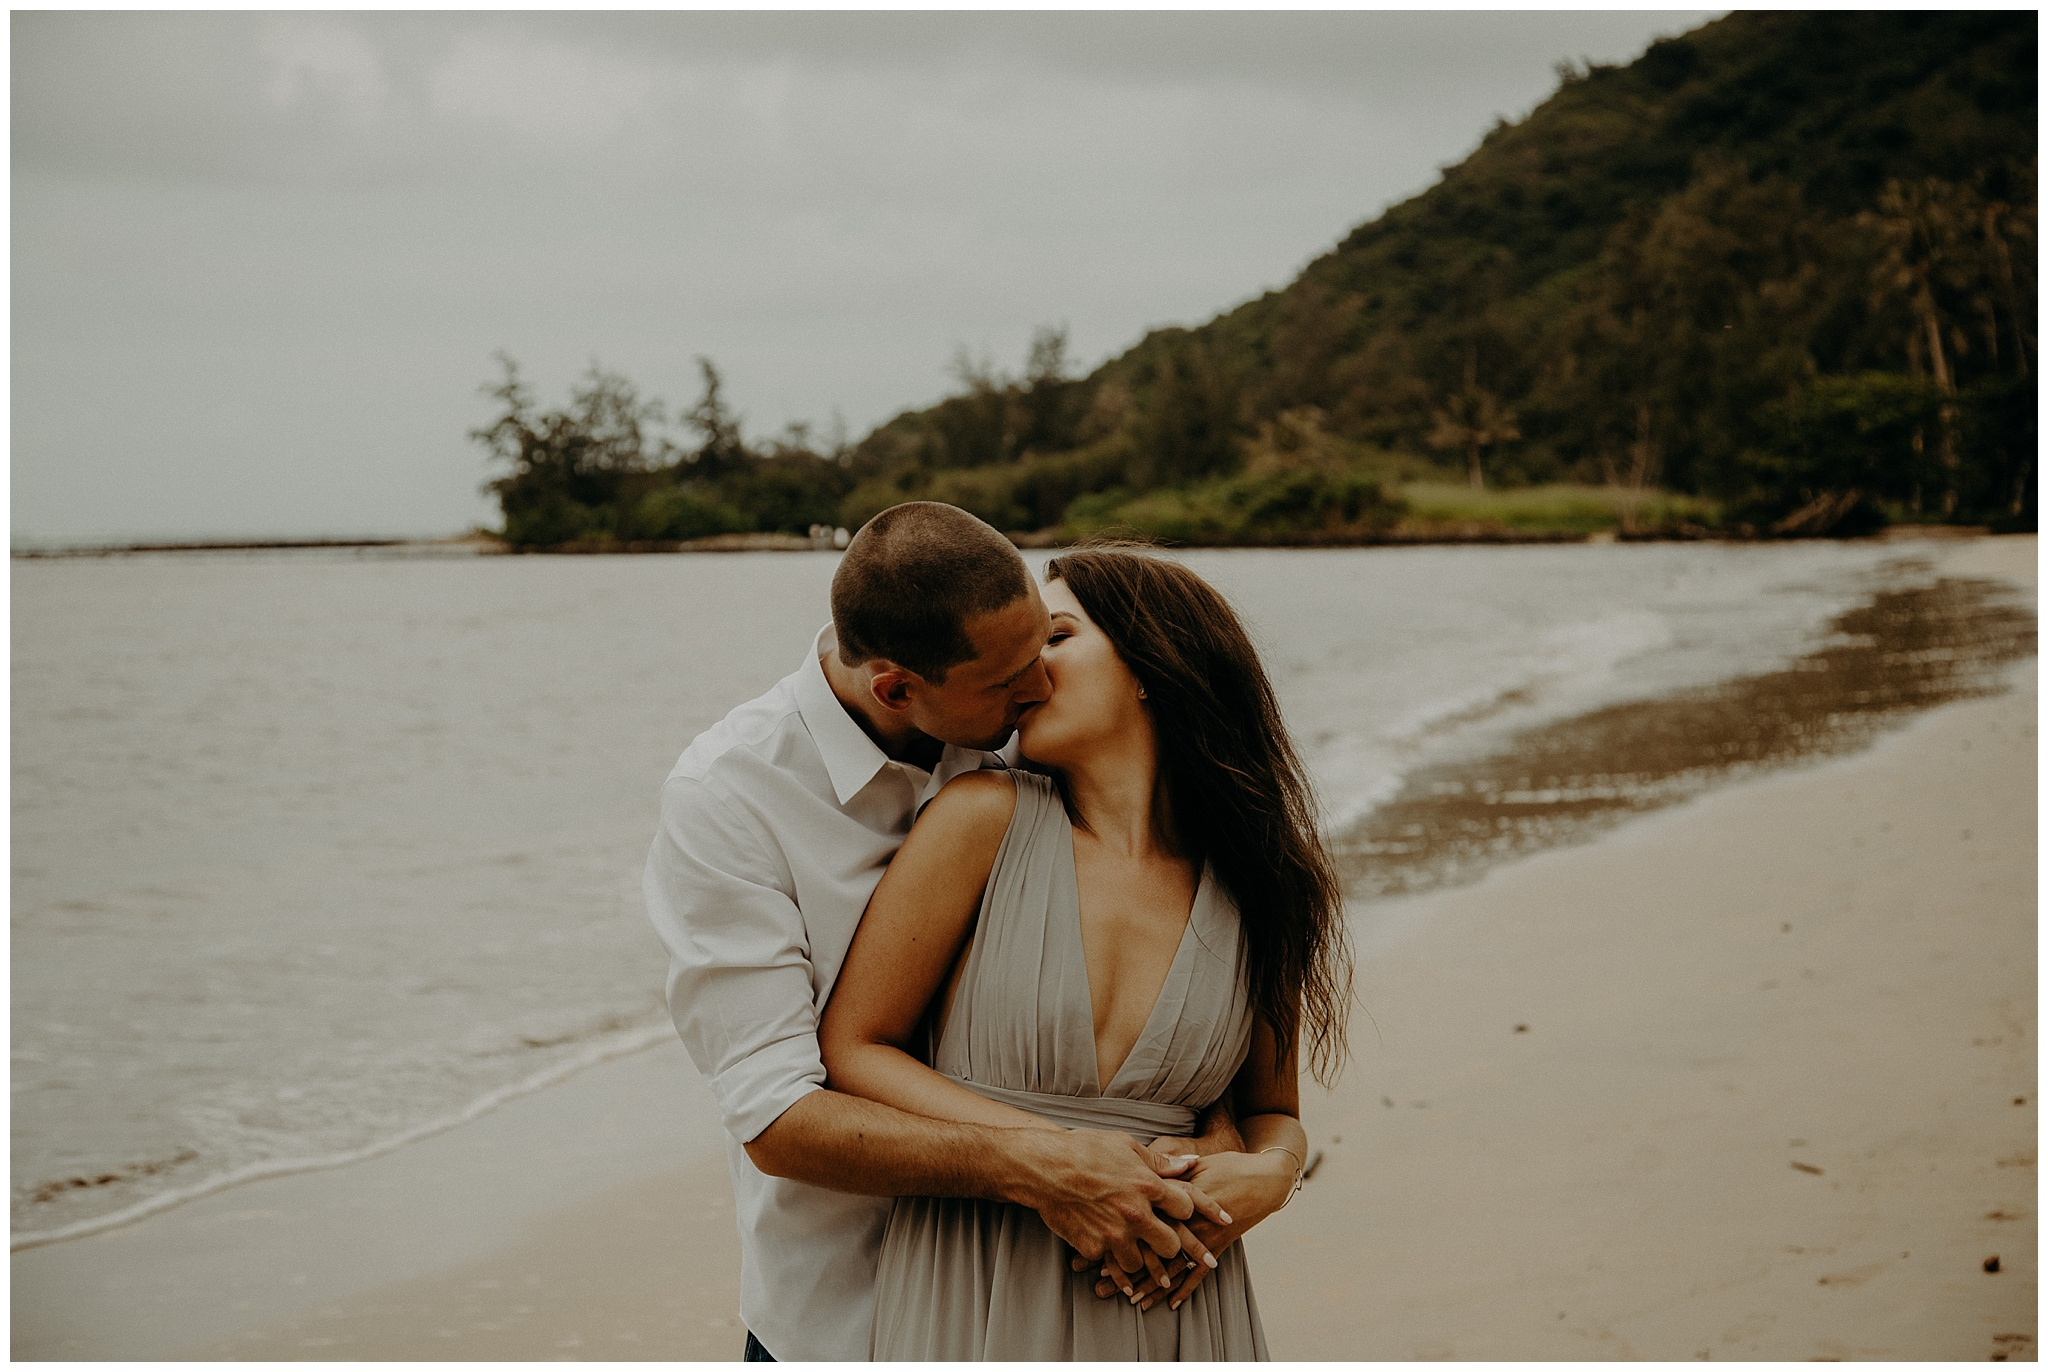 kahana-bay-engagement-photos3.jpg